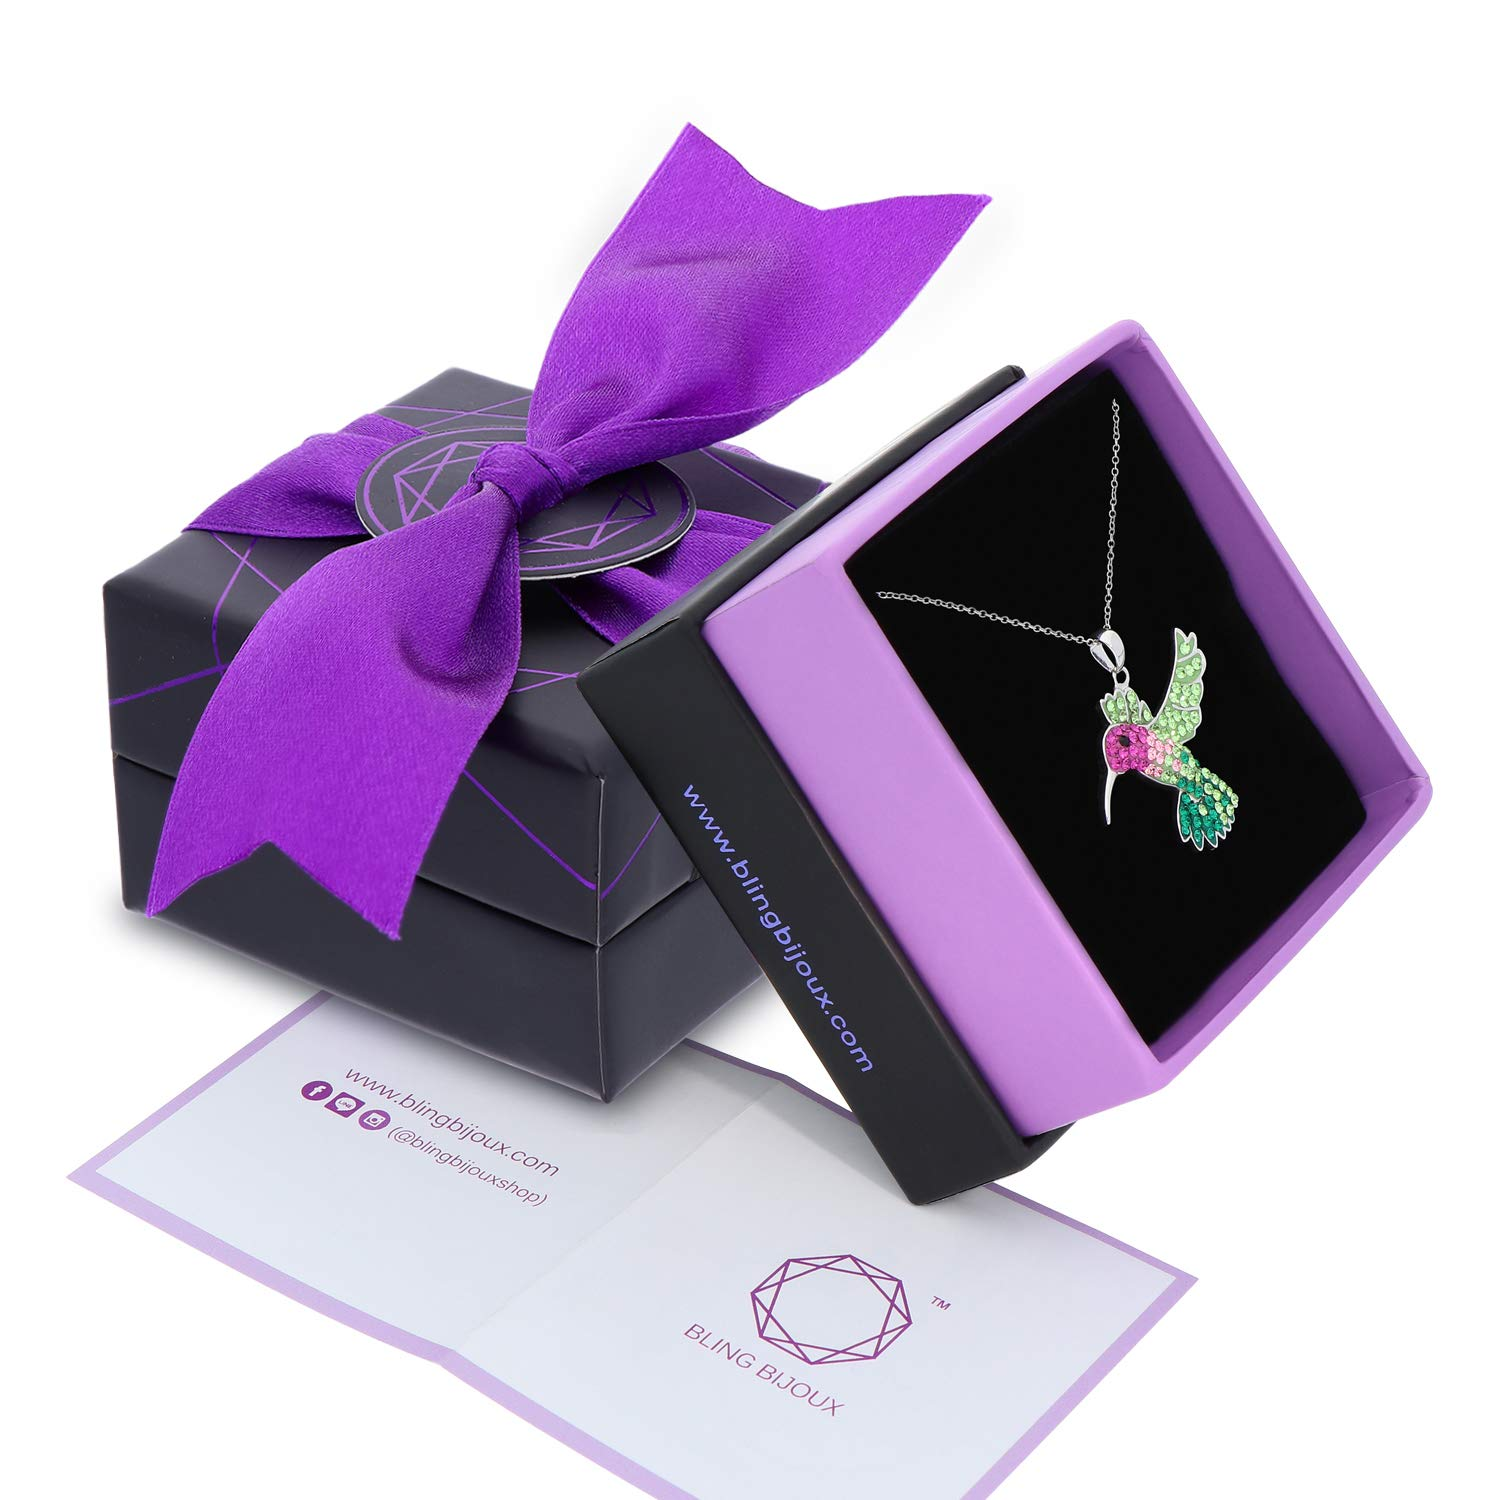 Colorful Flying Hummingbird Crystal Pendant Necklace Never Rust 925 Sterling Silver for Women, Girls & Teens, Natural & Hypoallergenic Chain with Free Breathtaking Gift Box for Special Moments of Love by BLING BIJOUX Jewelry (Image #2)